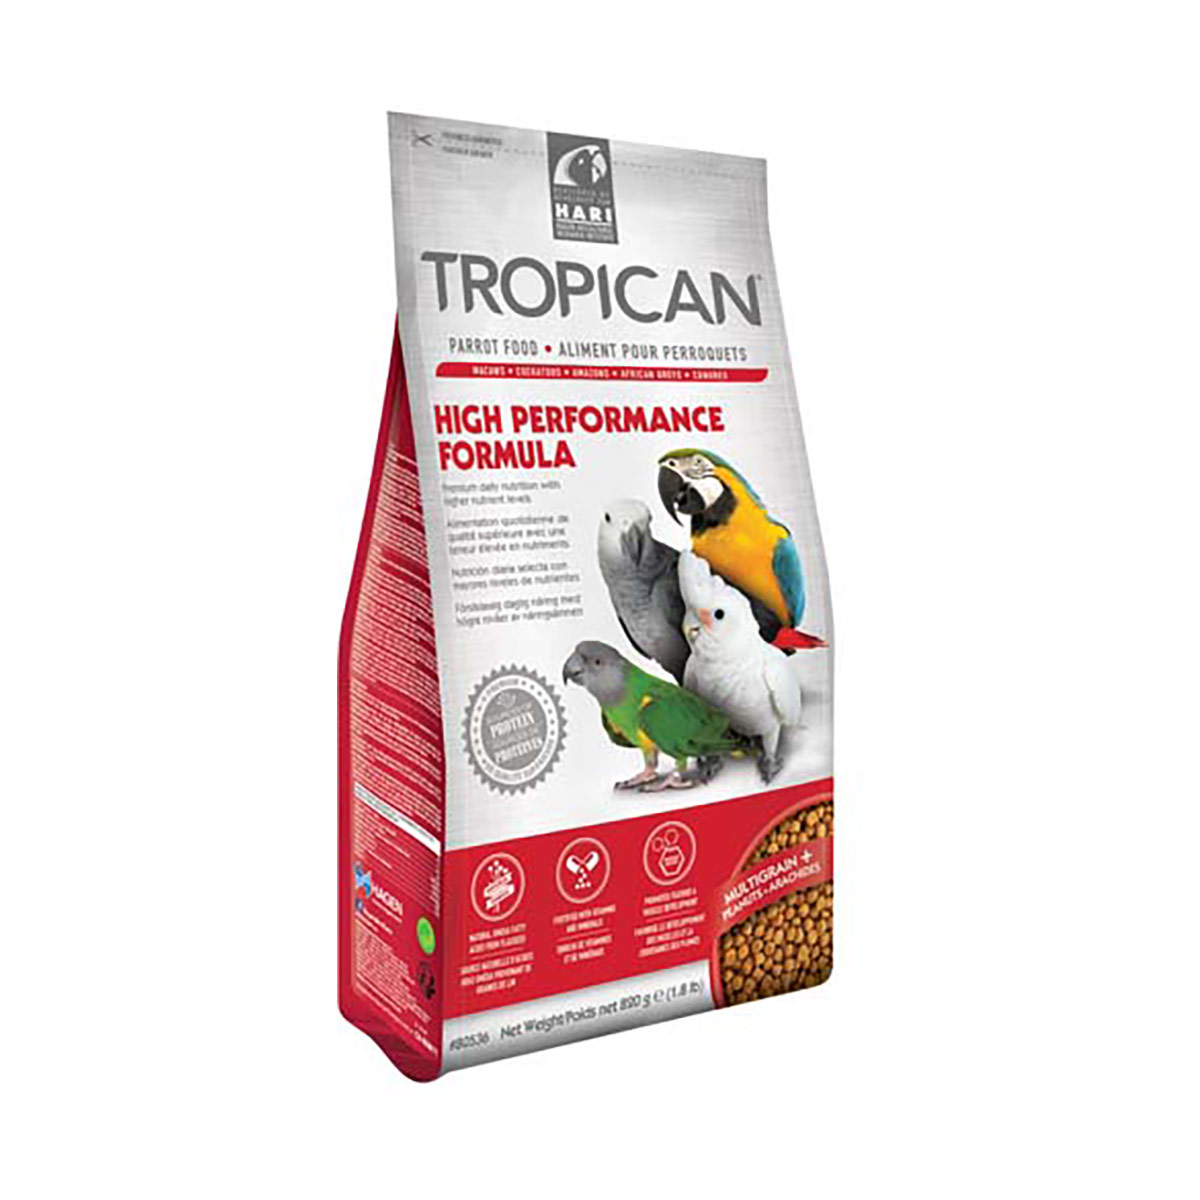 Image of Hari Tropican High Performance Formula : Stick - 1,5 kg